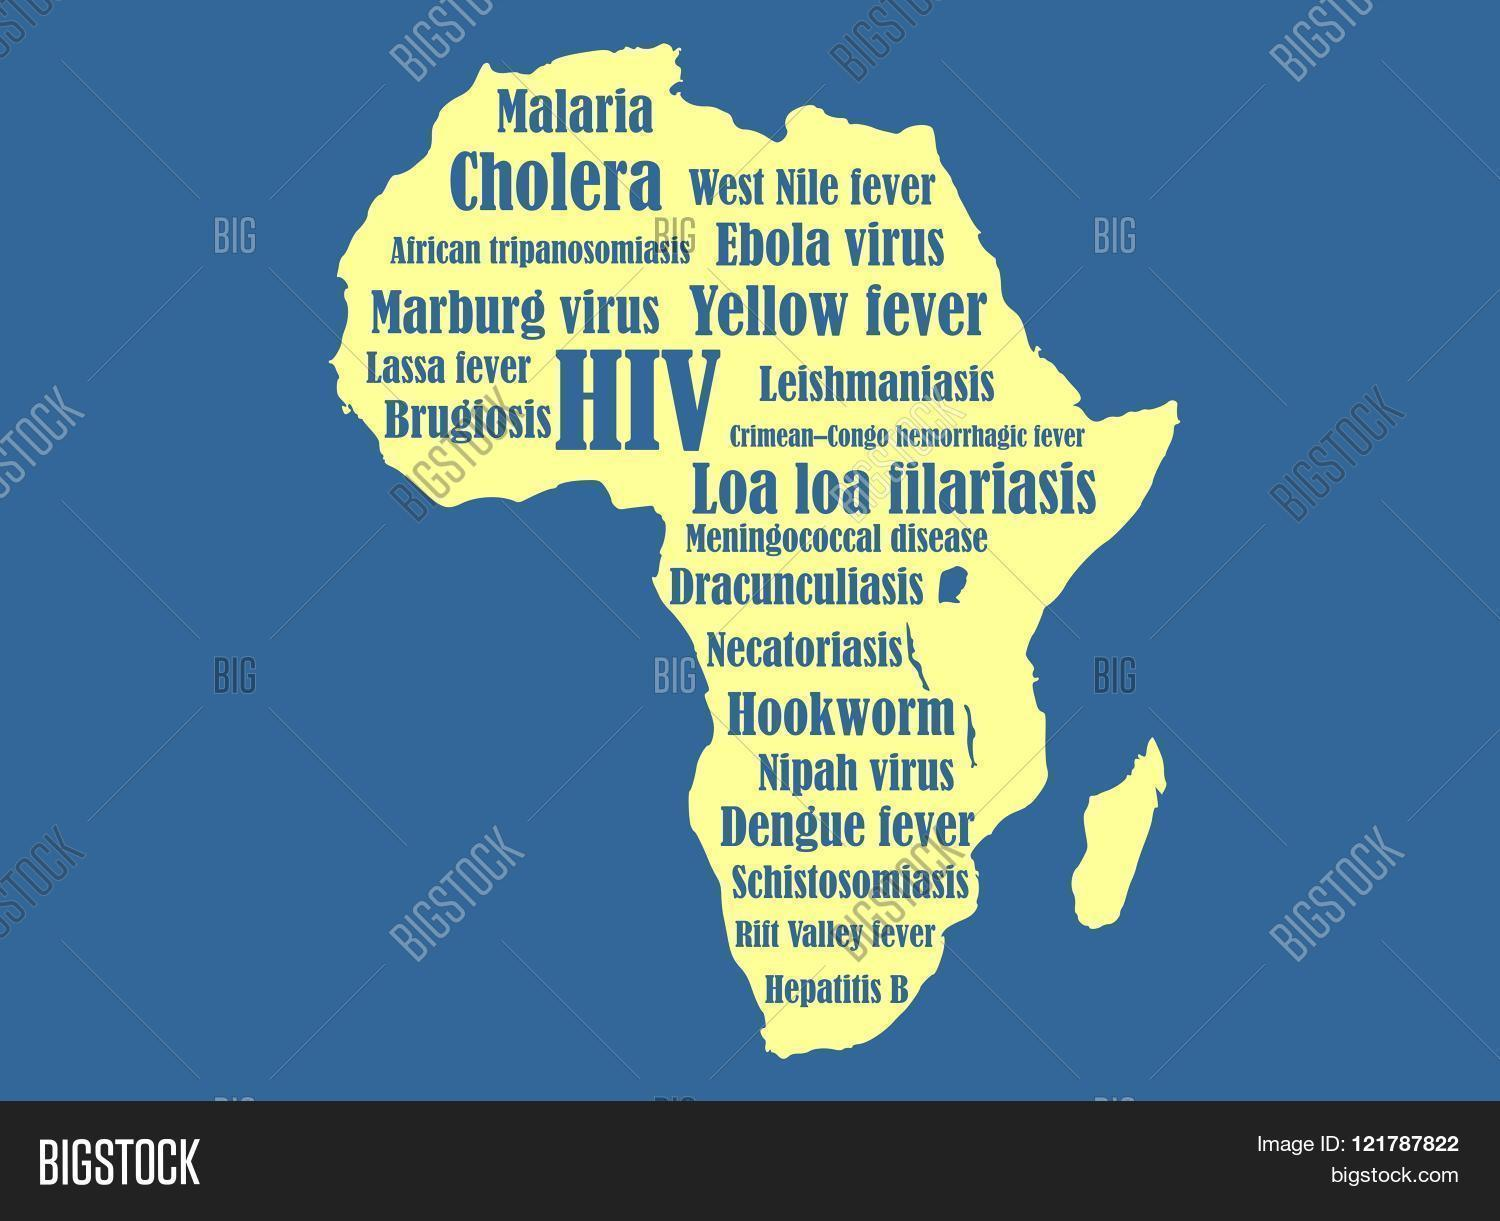 Continent map of diseases map of the world map of india map of african continent diseases name image photo bigstock on map of the world gumiabroncs Gallery